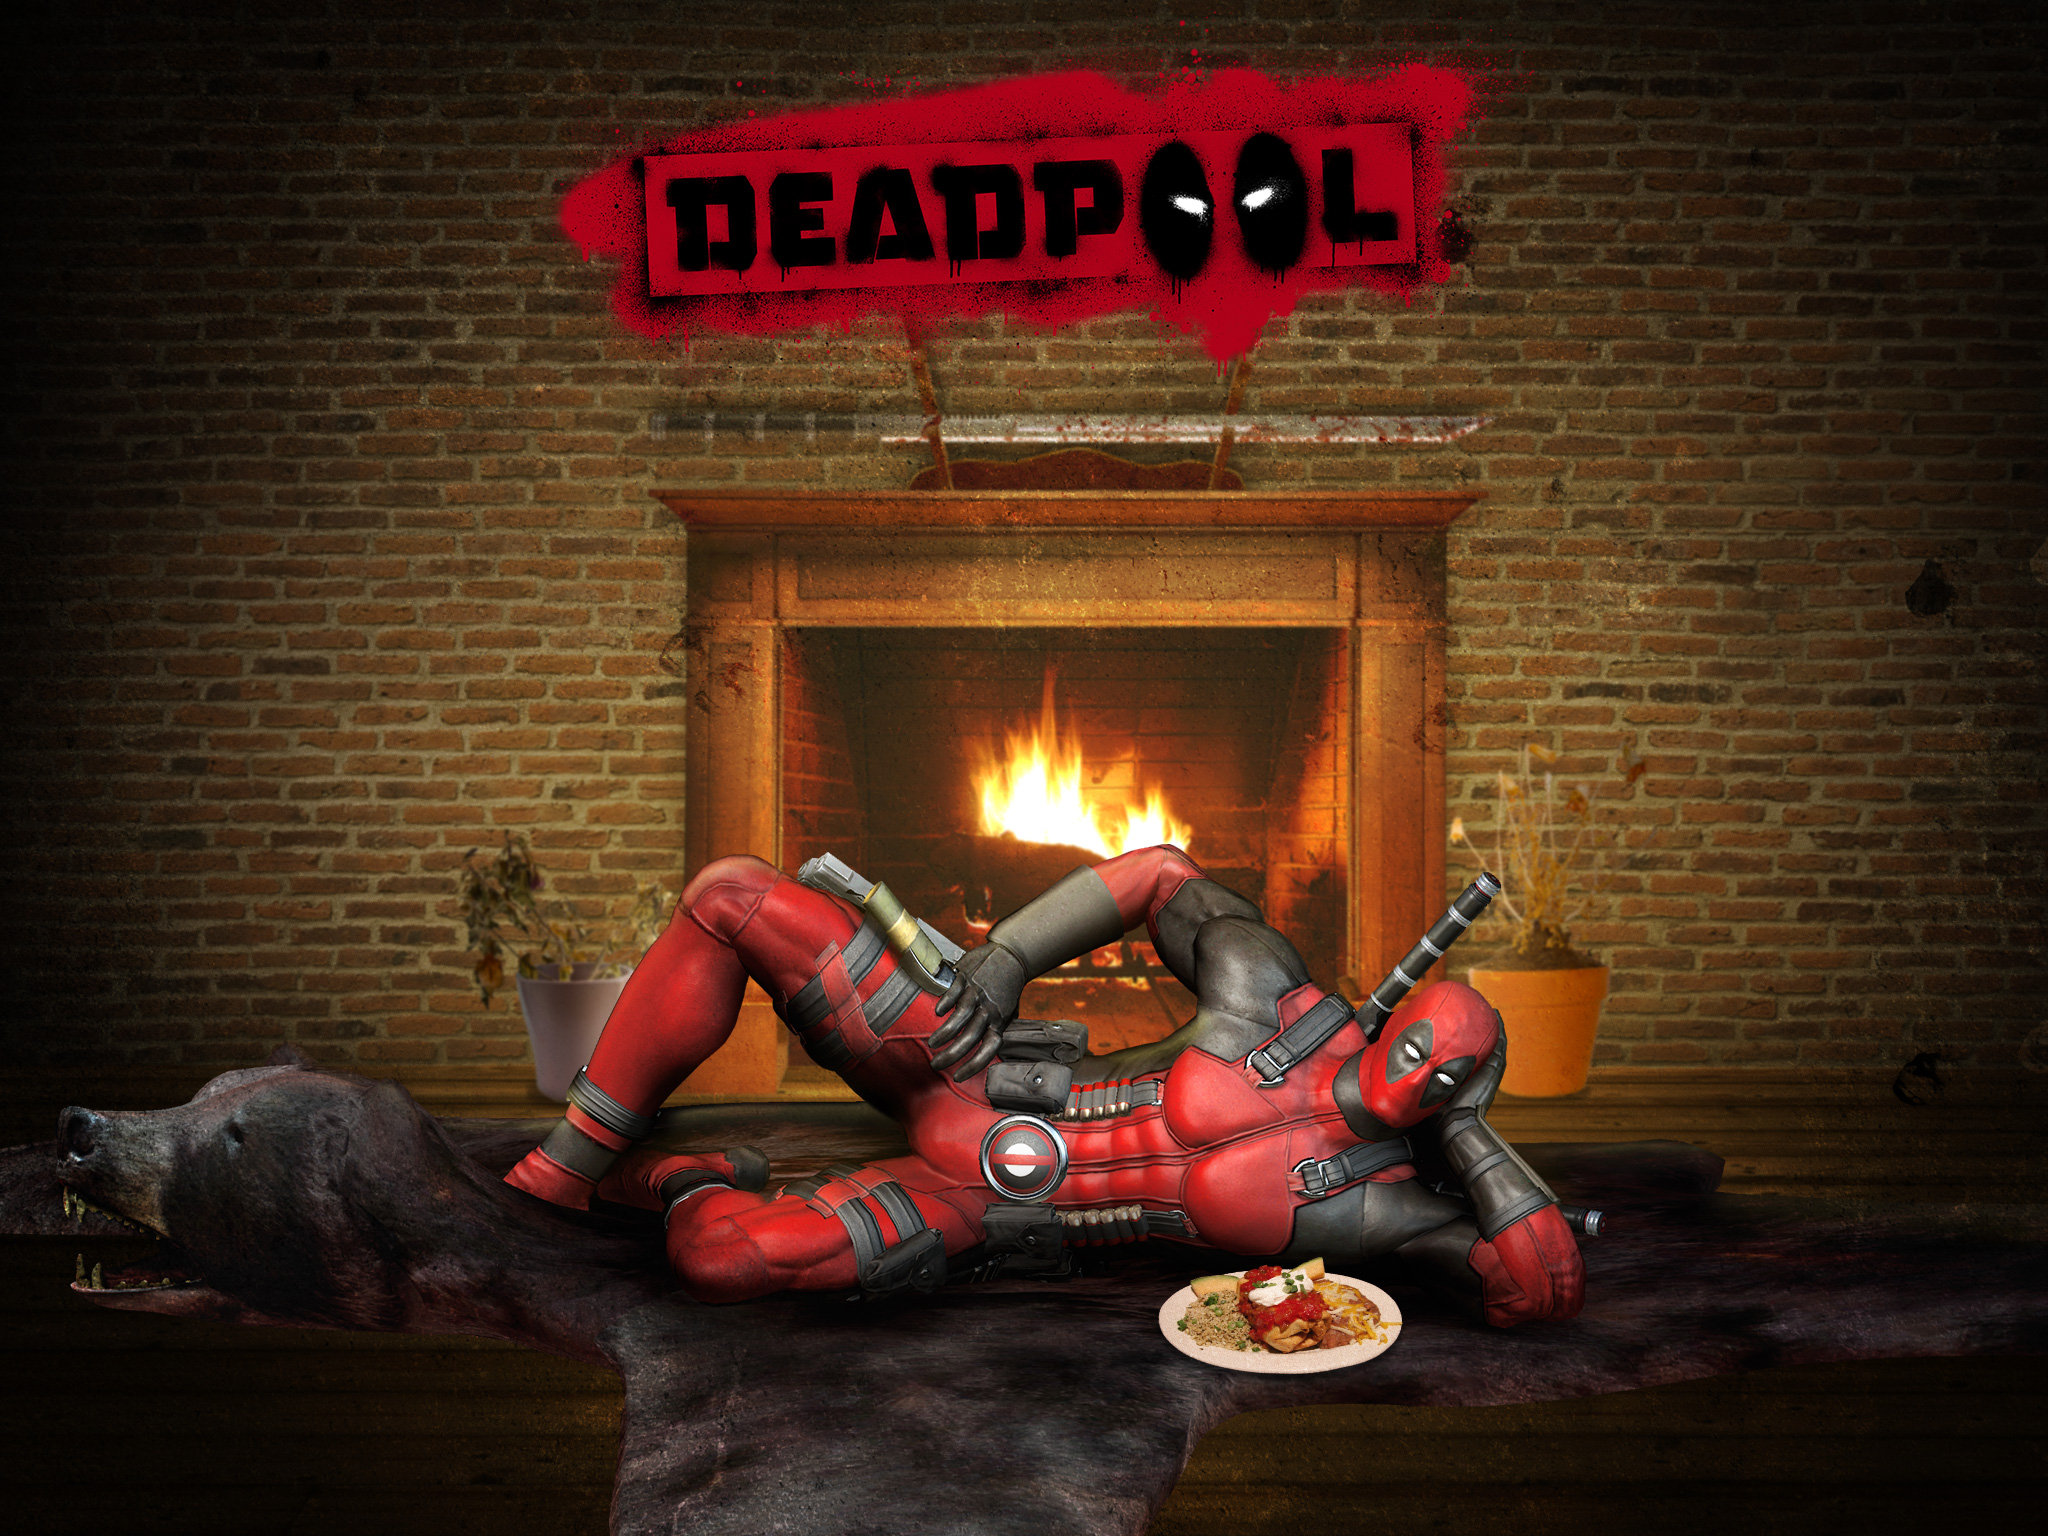 Beautiful Wallpaper Deadpool Xbox One - DP_Amazon-PreOrder-2048x1536-ipad3_FINAL  Picture_348289 .jpg